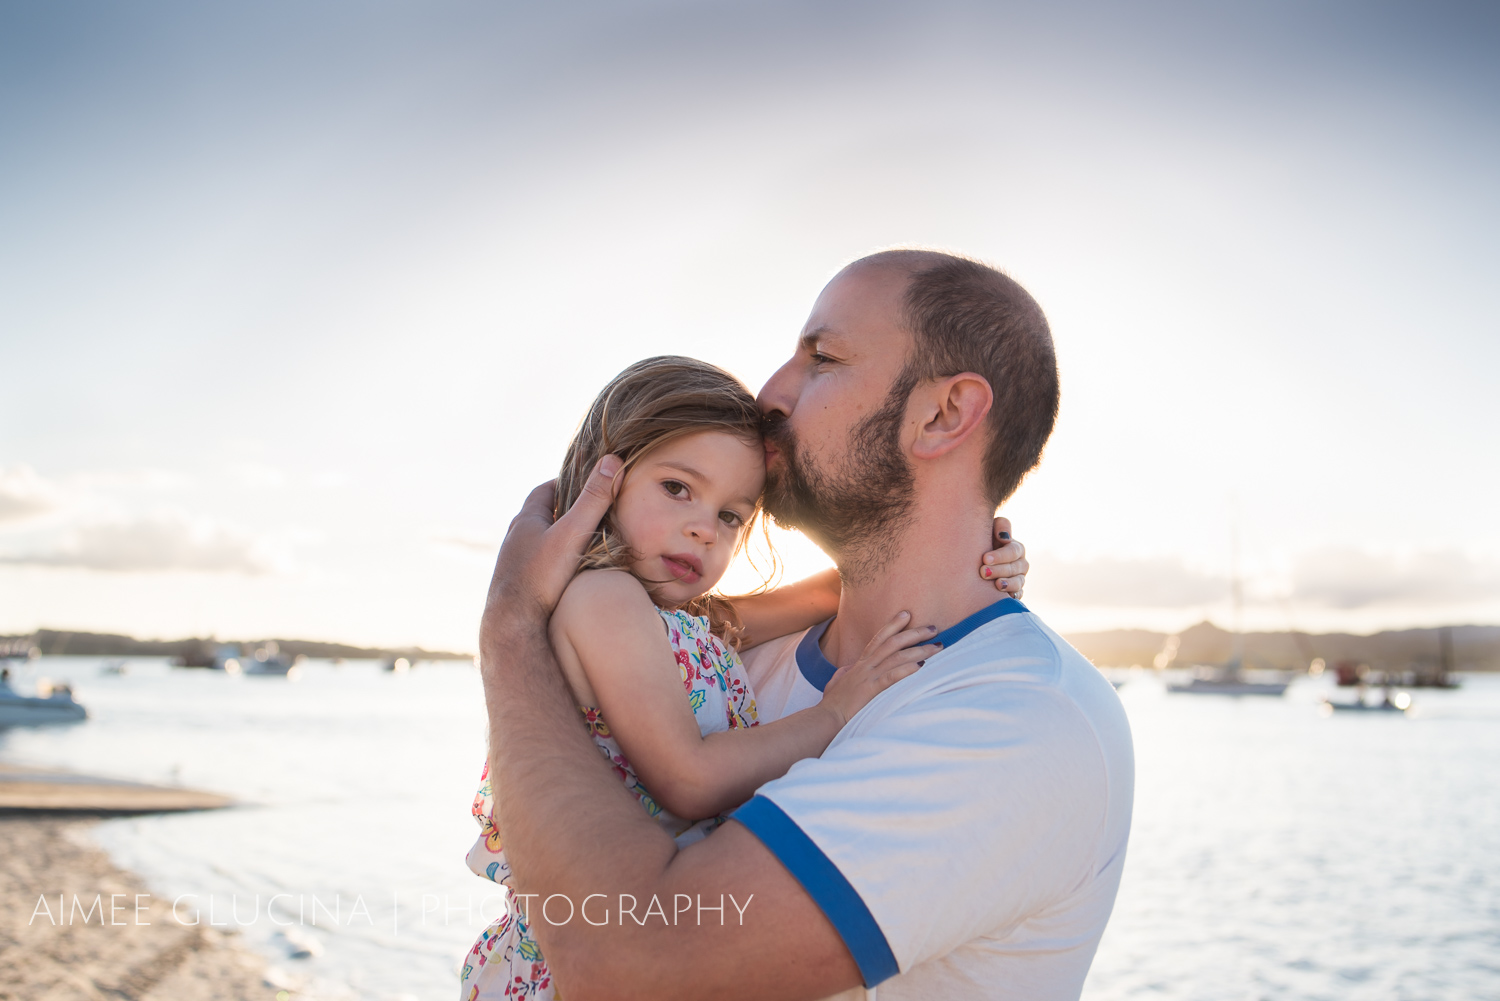 This is that warm golden light I'm talking about. Just be conscious that it's harder to get evenly lit faces if you're backlighting at sunset. Using a reflector will help, even if it's just that you're wearing a white shirt to bouncy some light back on your child's face.